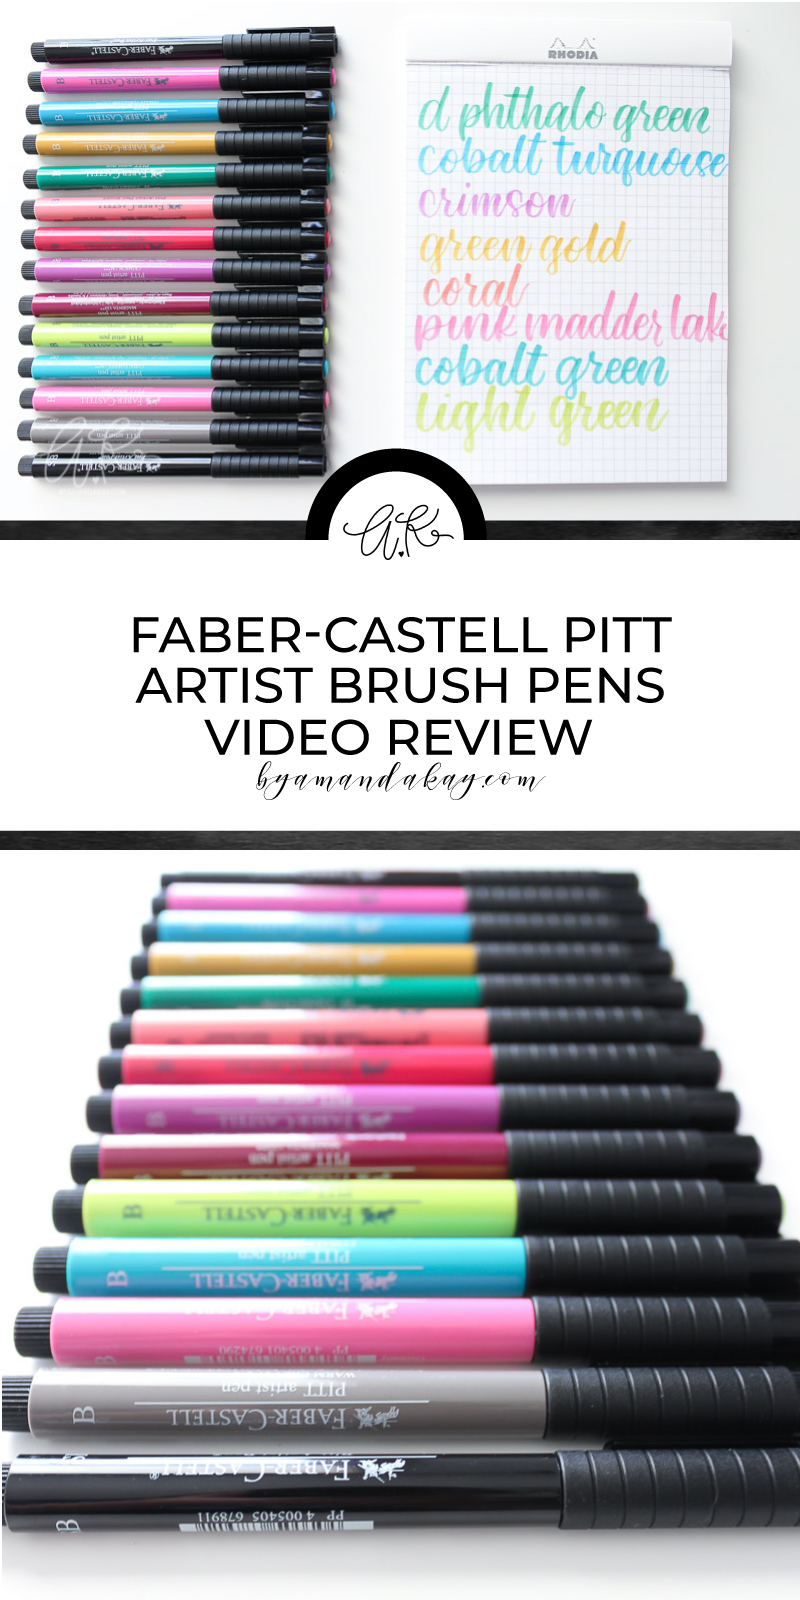 Pin image for faber-castell review